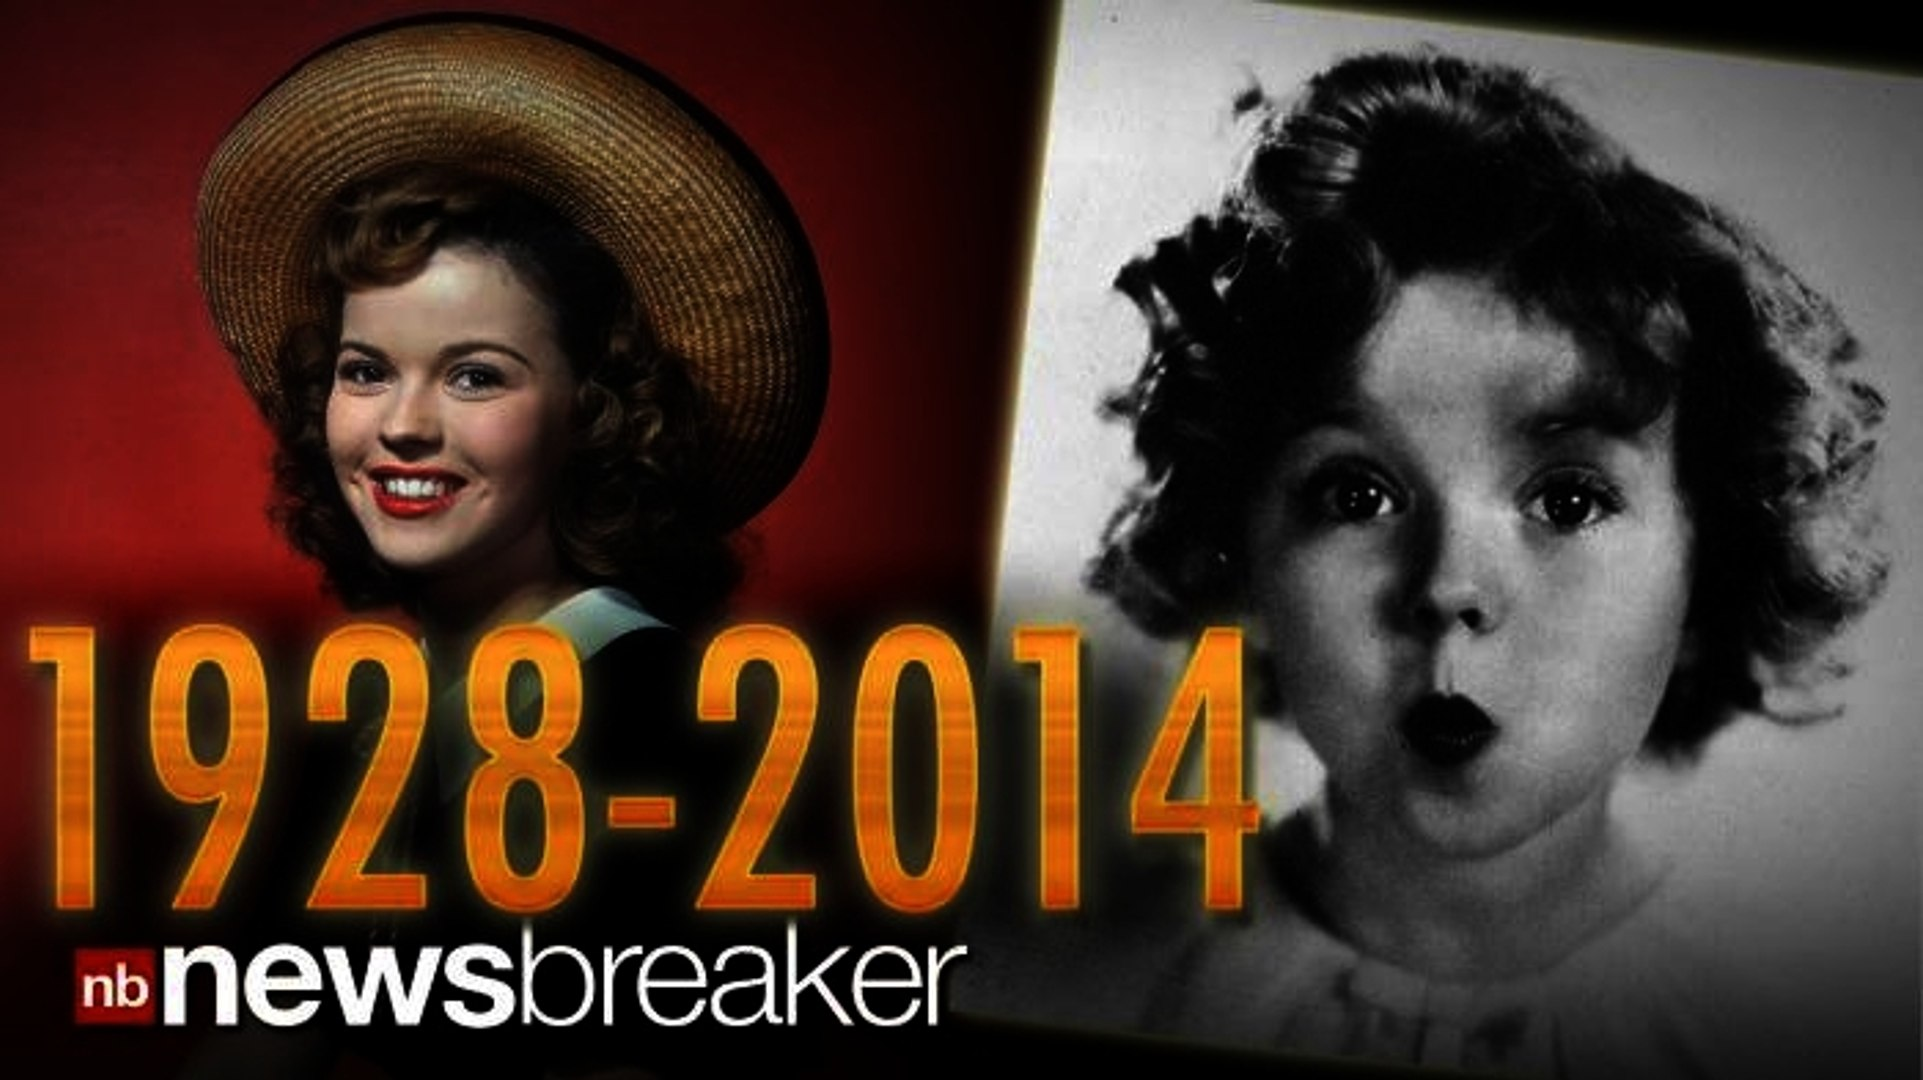 1928-2014: America's Little Darling, Shirley Temple, Dies Peacefully in California Home at 85